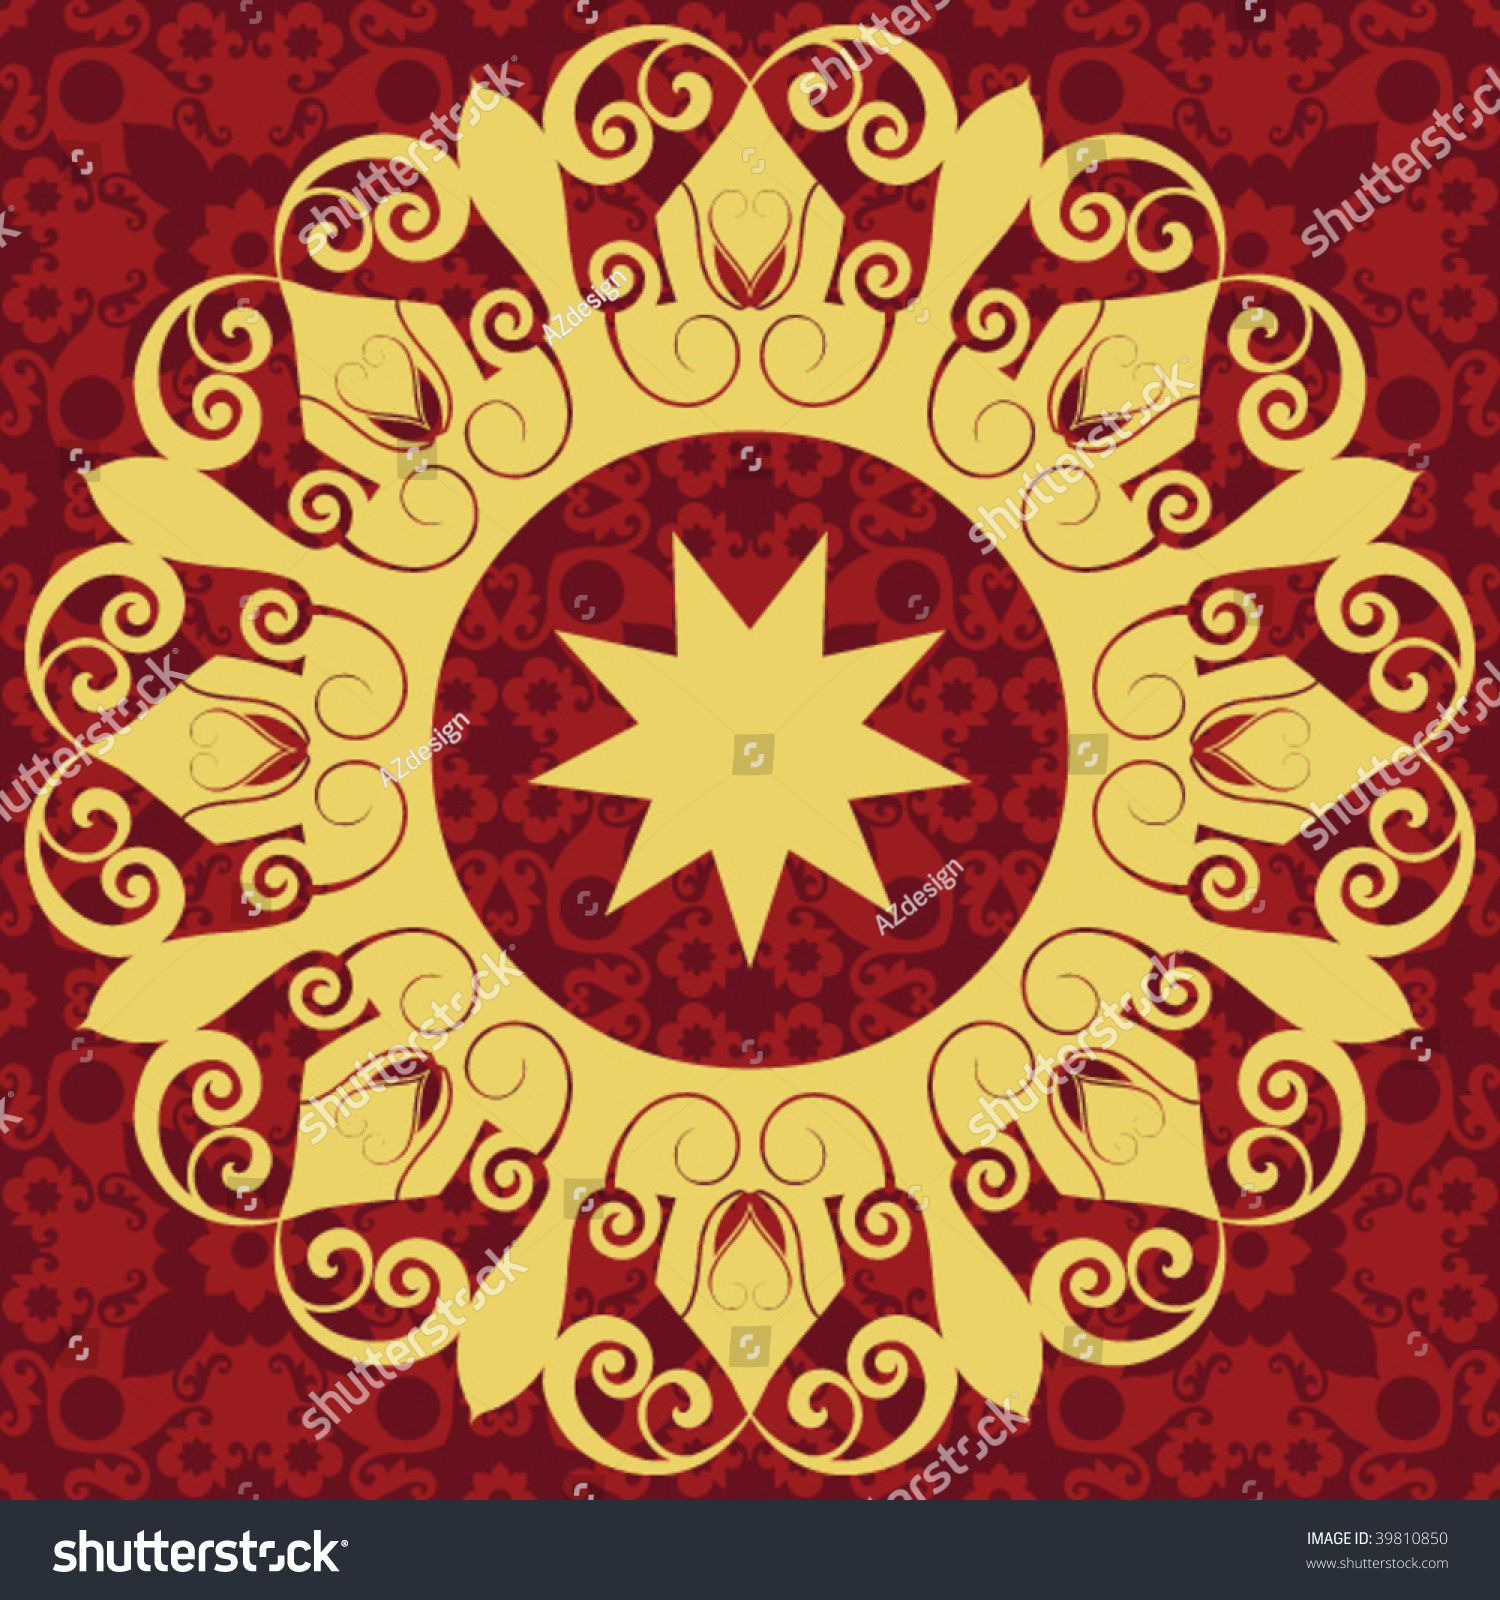 Ornate baroque decoration vector design elements for Baroque design elements